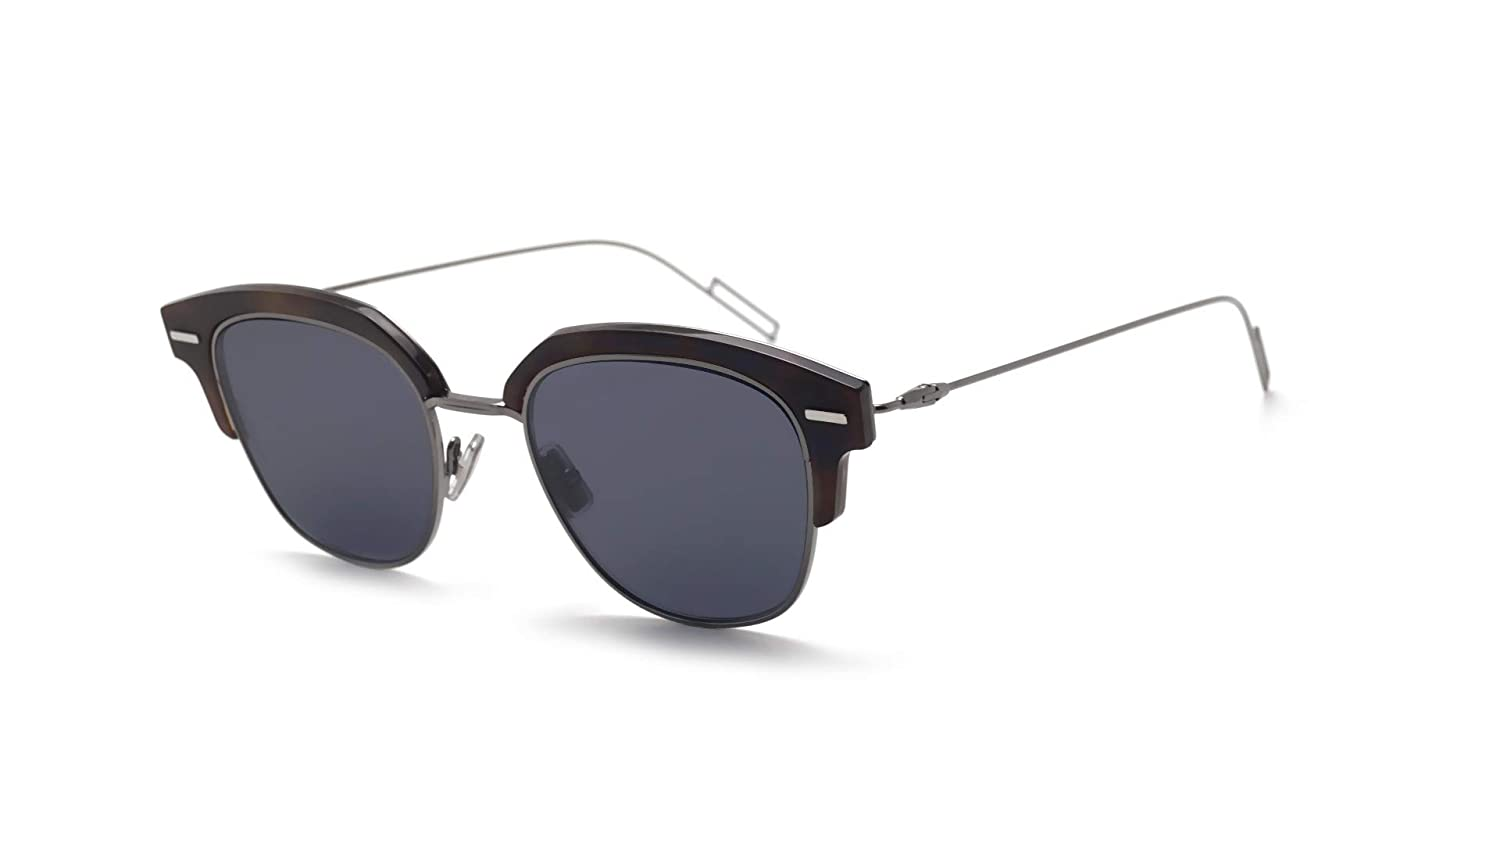 4f018afb57 Amazon.com  Christian Dior Homme DiorTensity Sunglasses Havana Grey w Blue  Mirror Gradient Gold Lens 48mm AB8A9 Dior Tensity Dior Tensity S DiorTensity S   ...